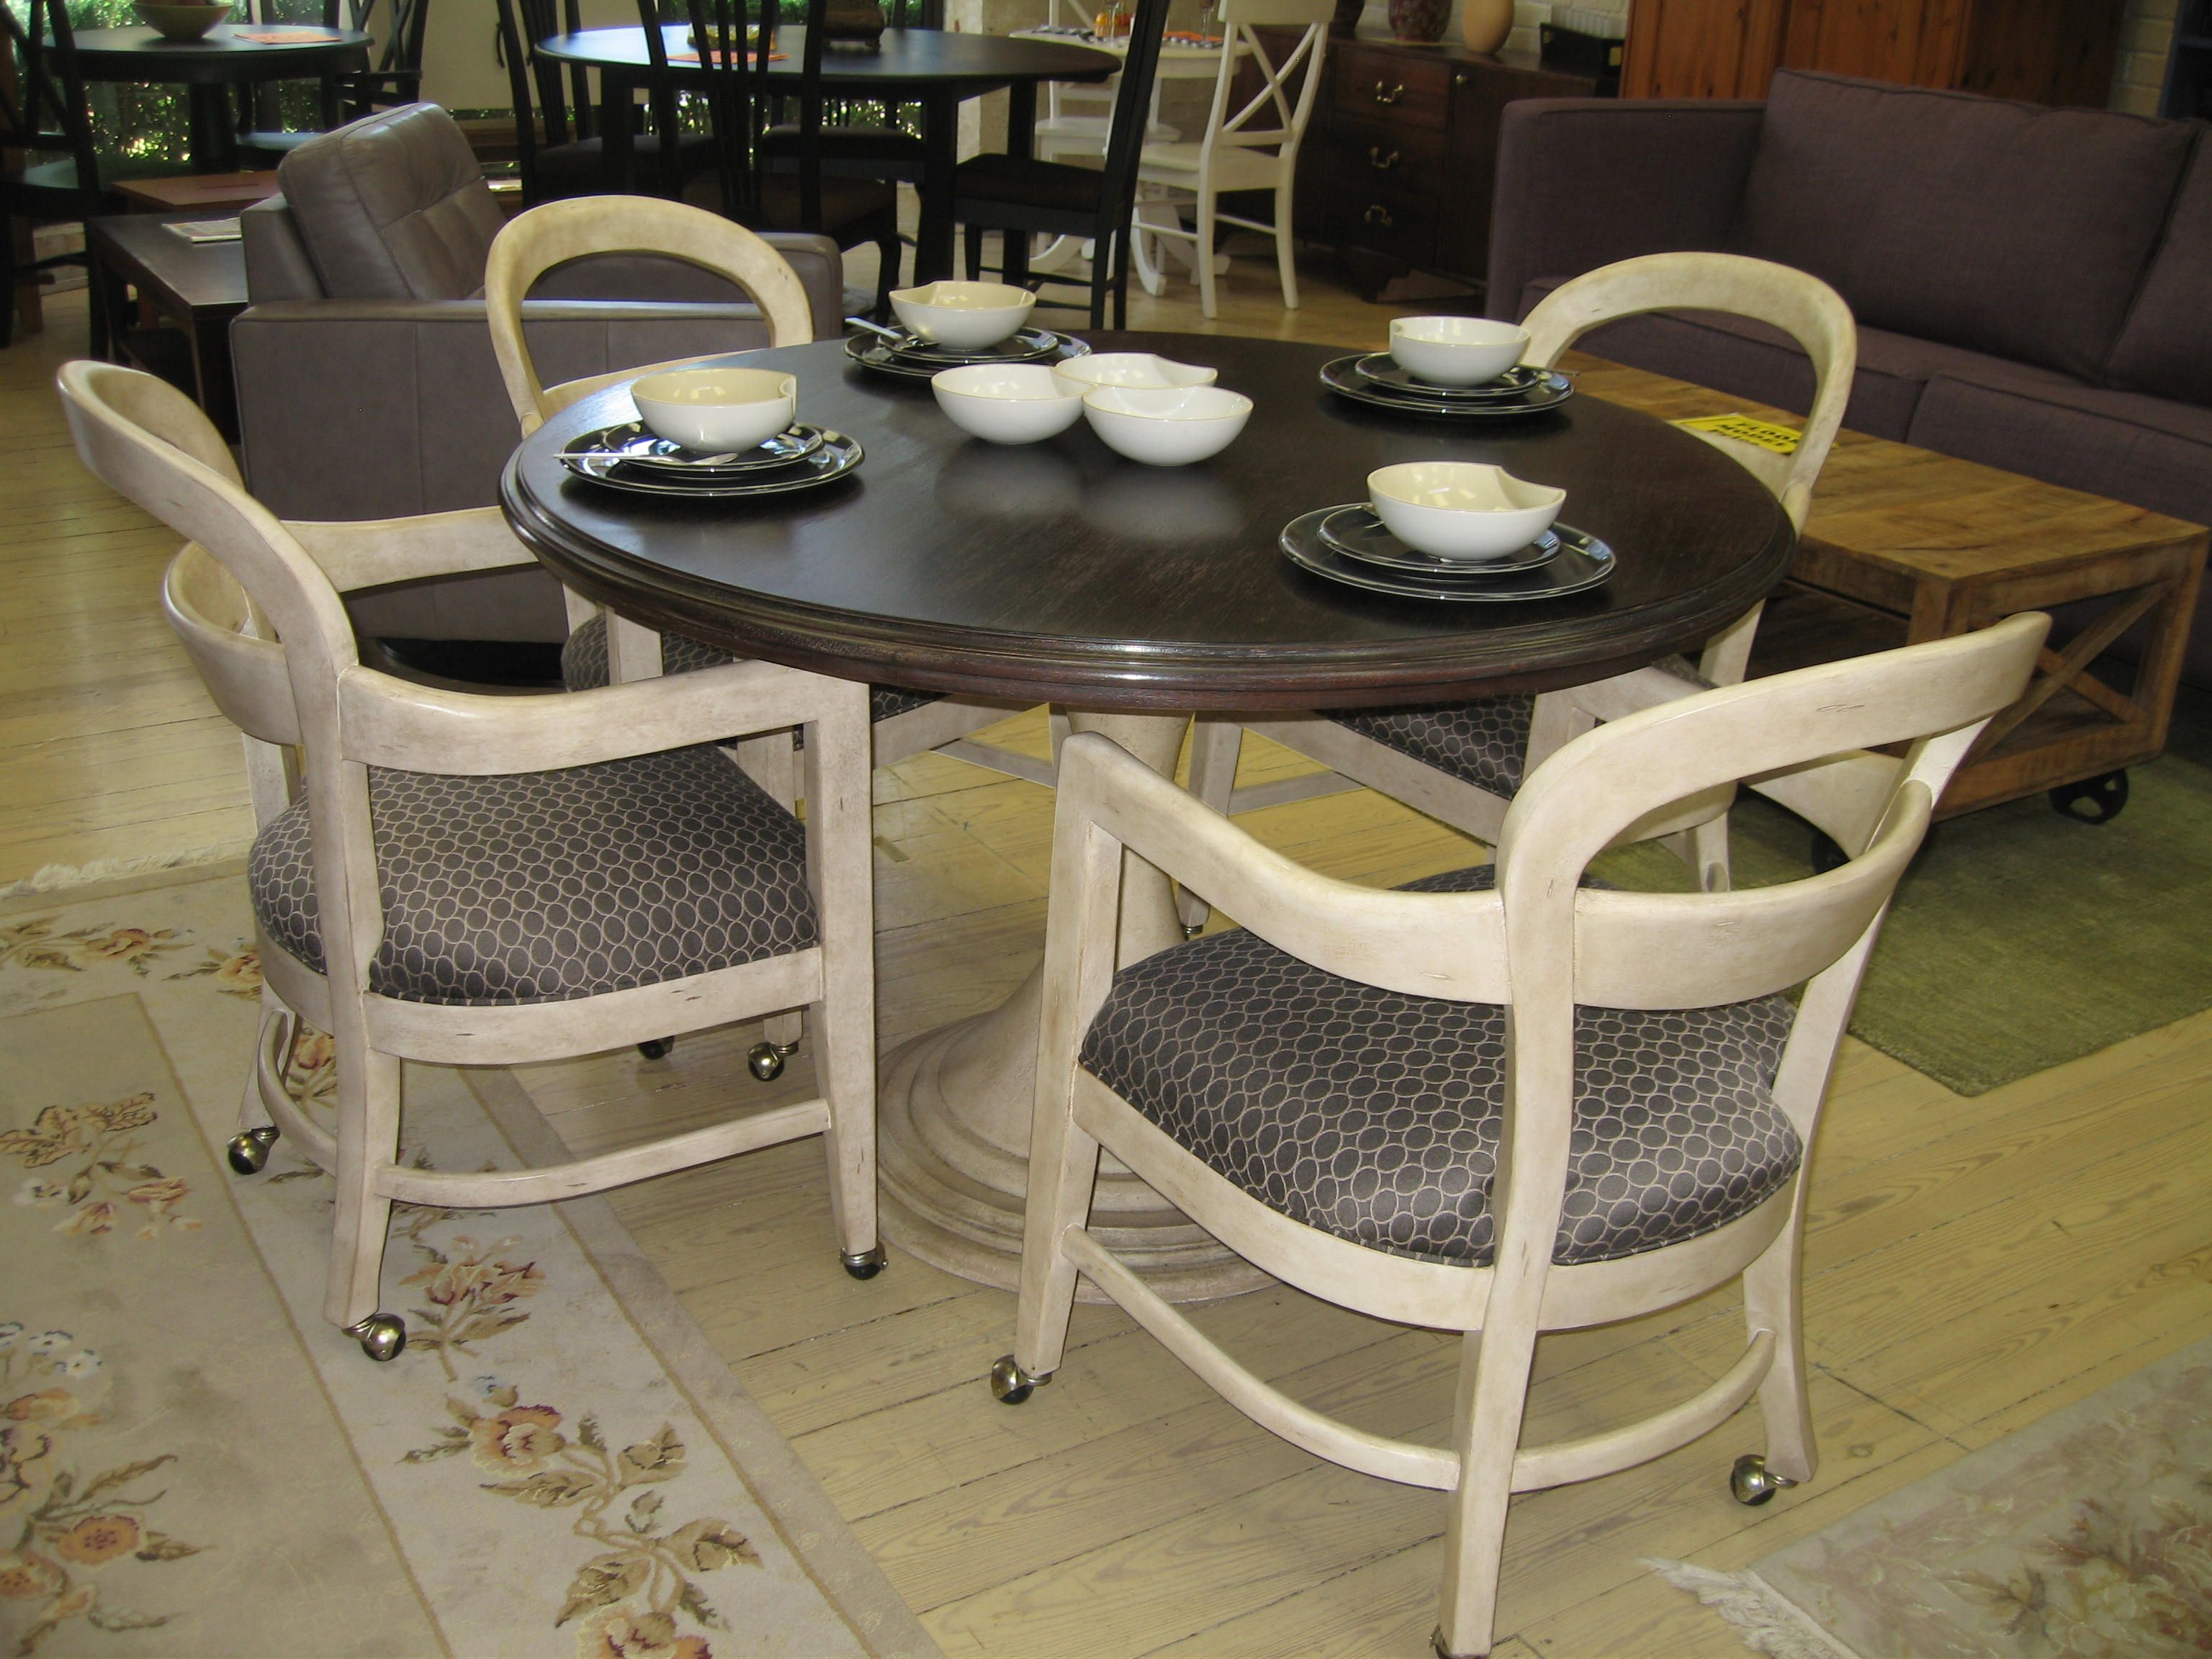 Cute Dining Room Chair With Casters And Round Wooden Dining Table With Dark Brown Sofabed Caster Chairs Elegant Dining Room Kitchen Table Chairs